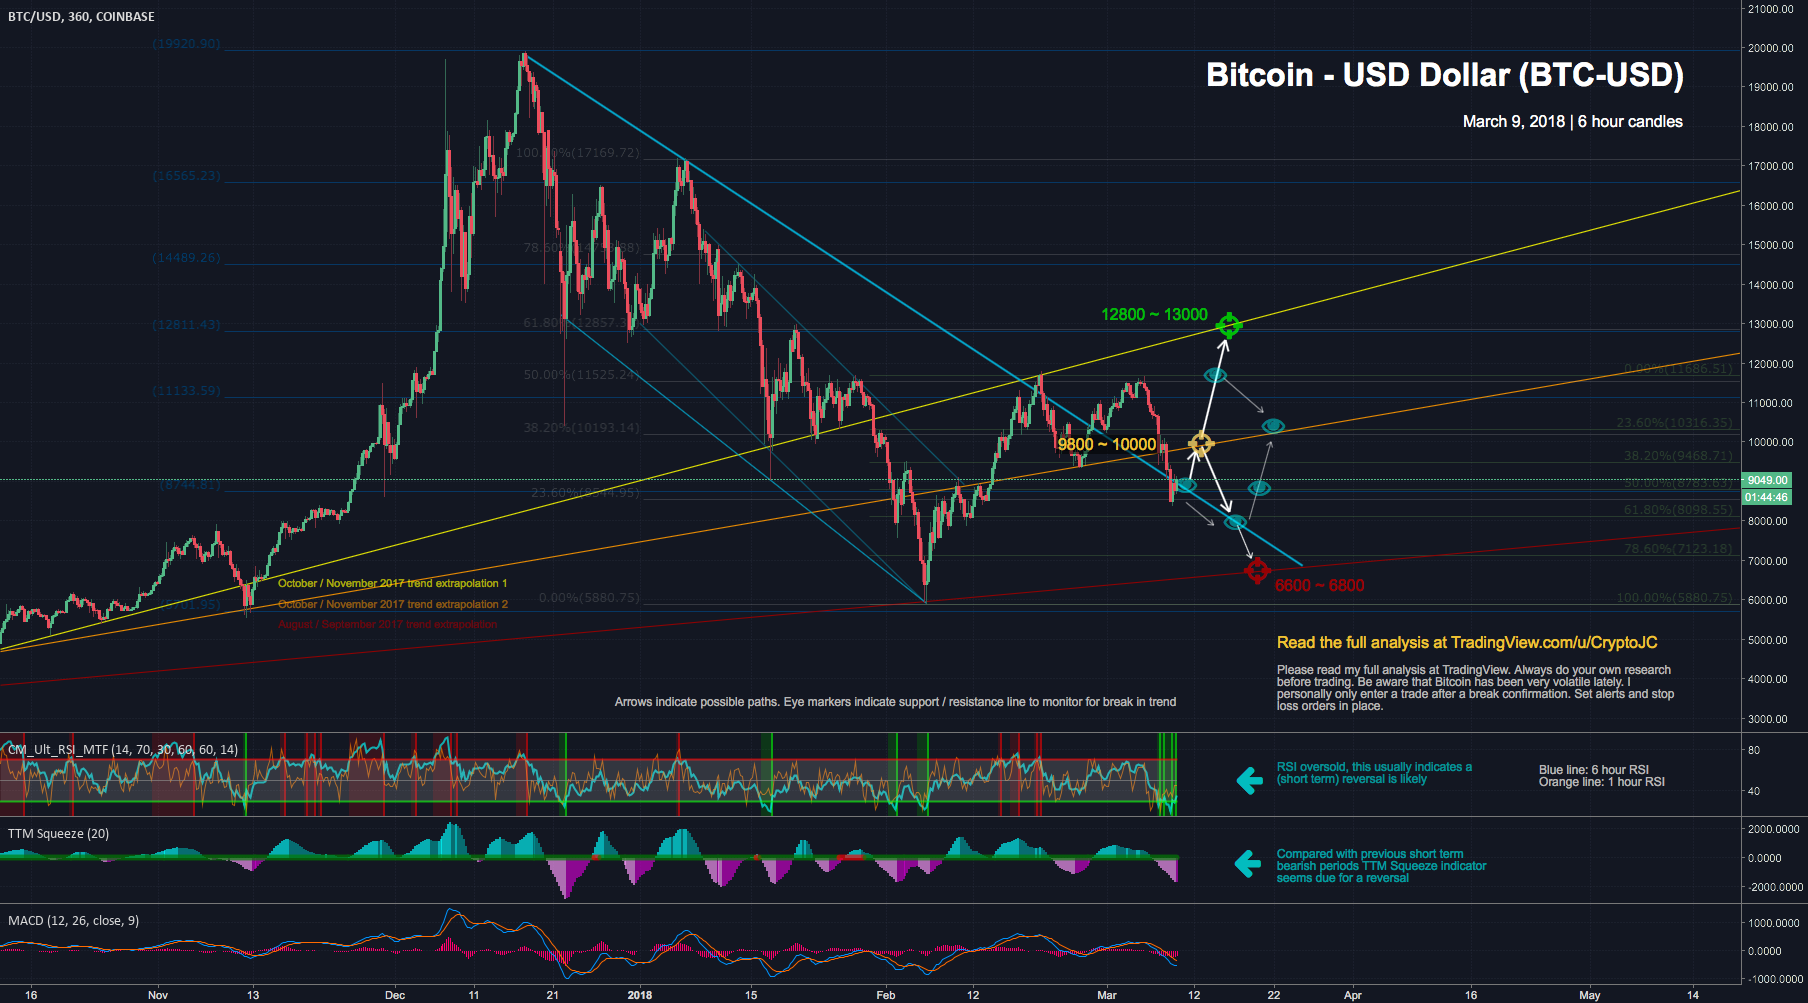 Bitcoin bullish the coming days? Analysis and recap of this week